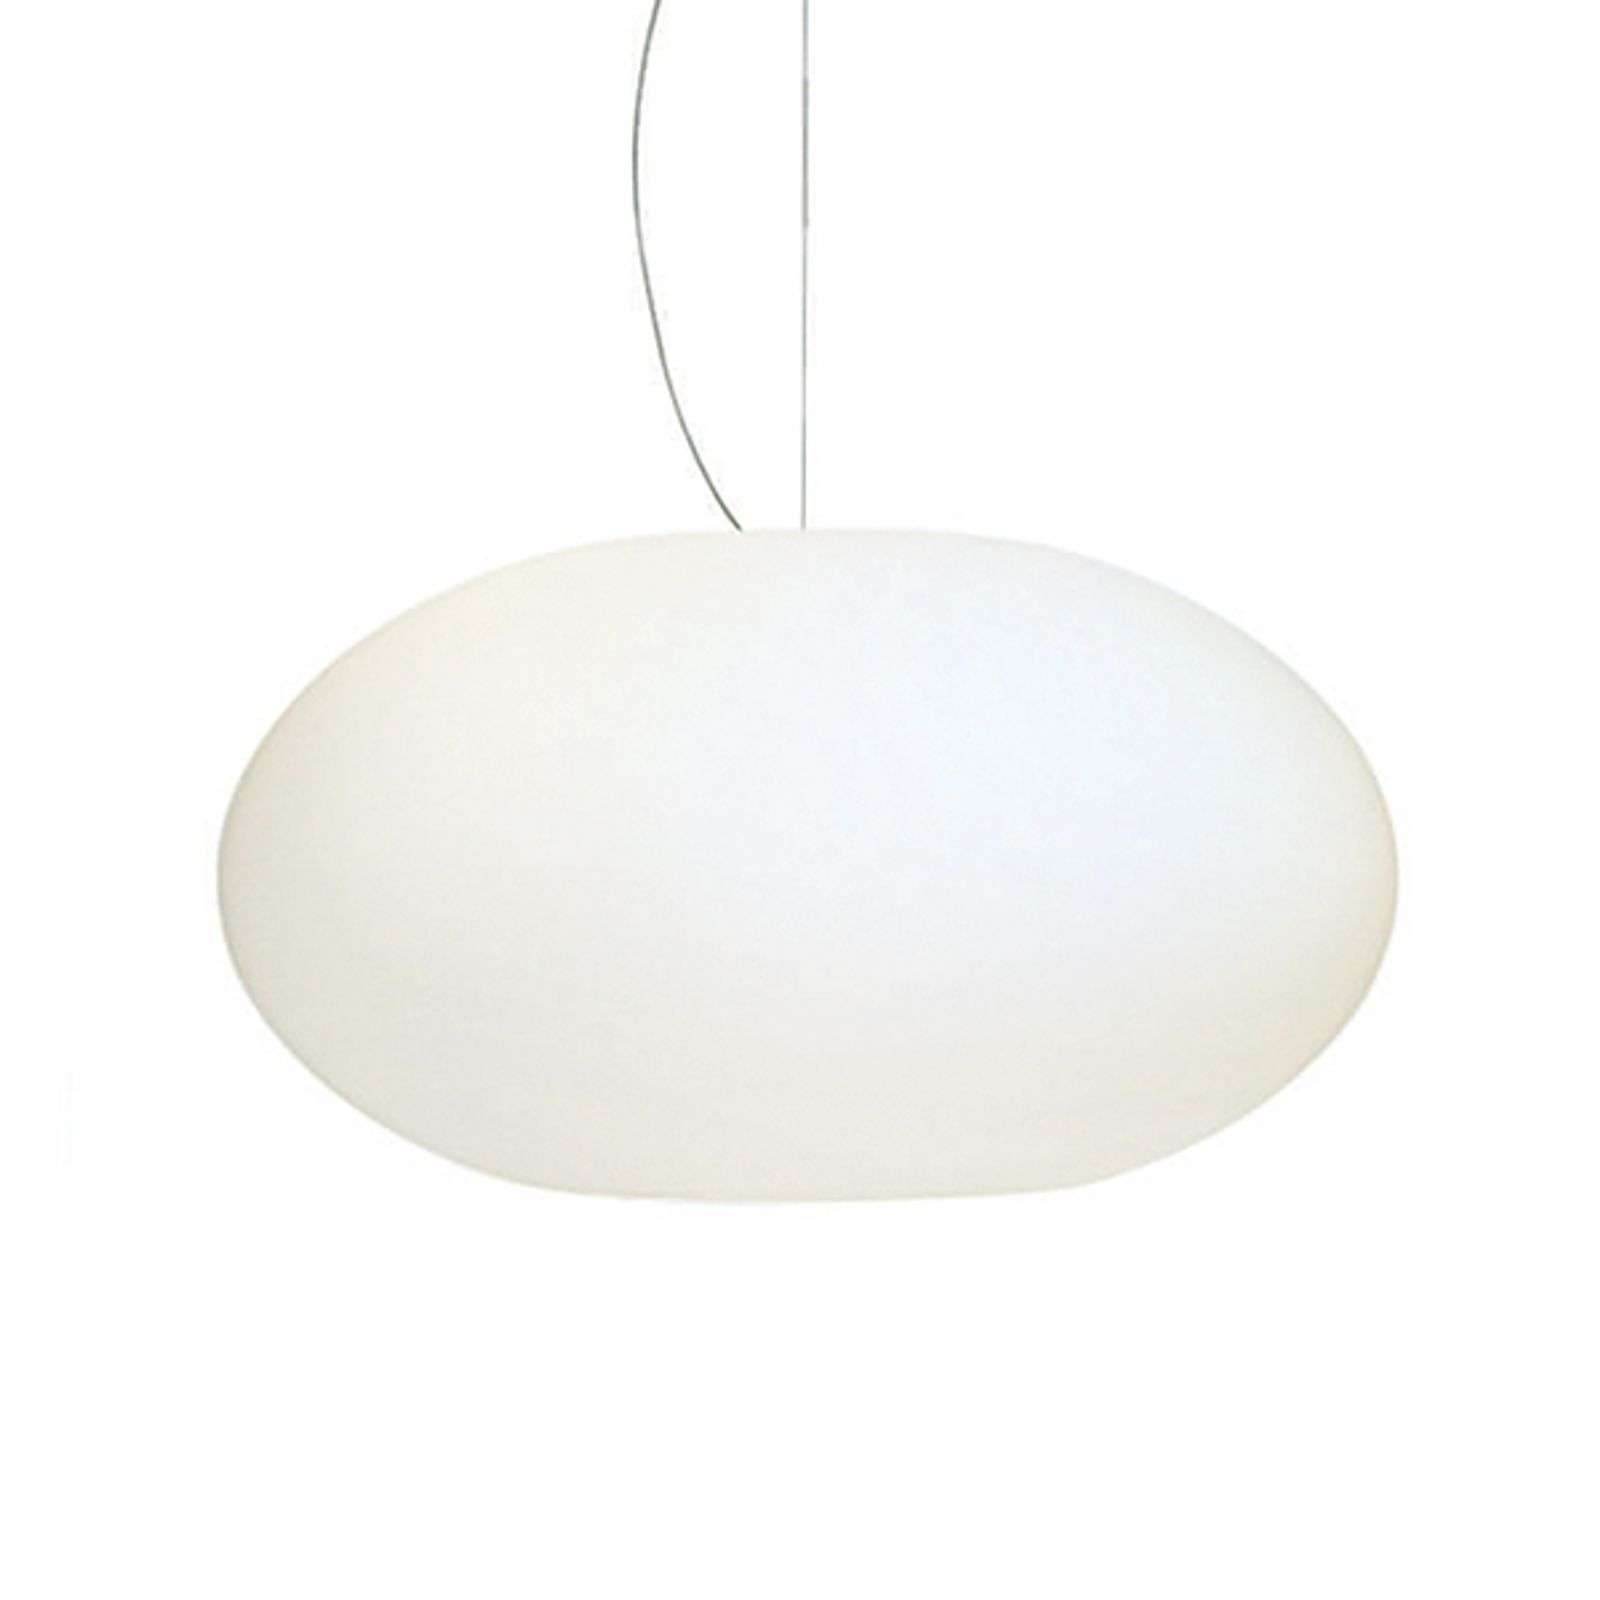 Suspension verre Aih 38 cm blanc mat